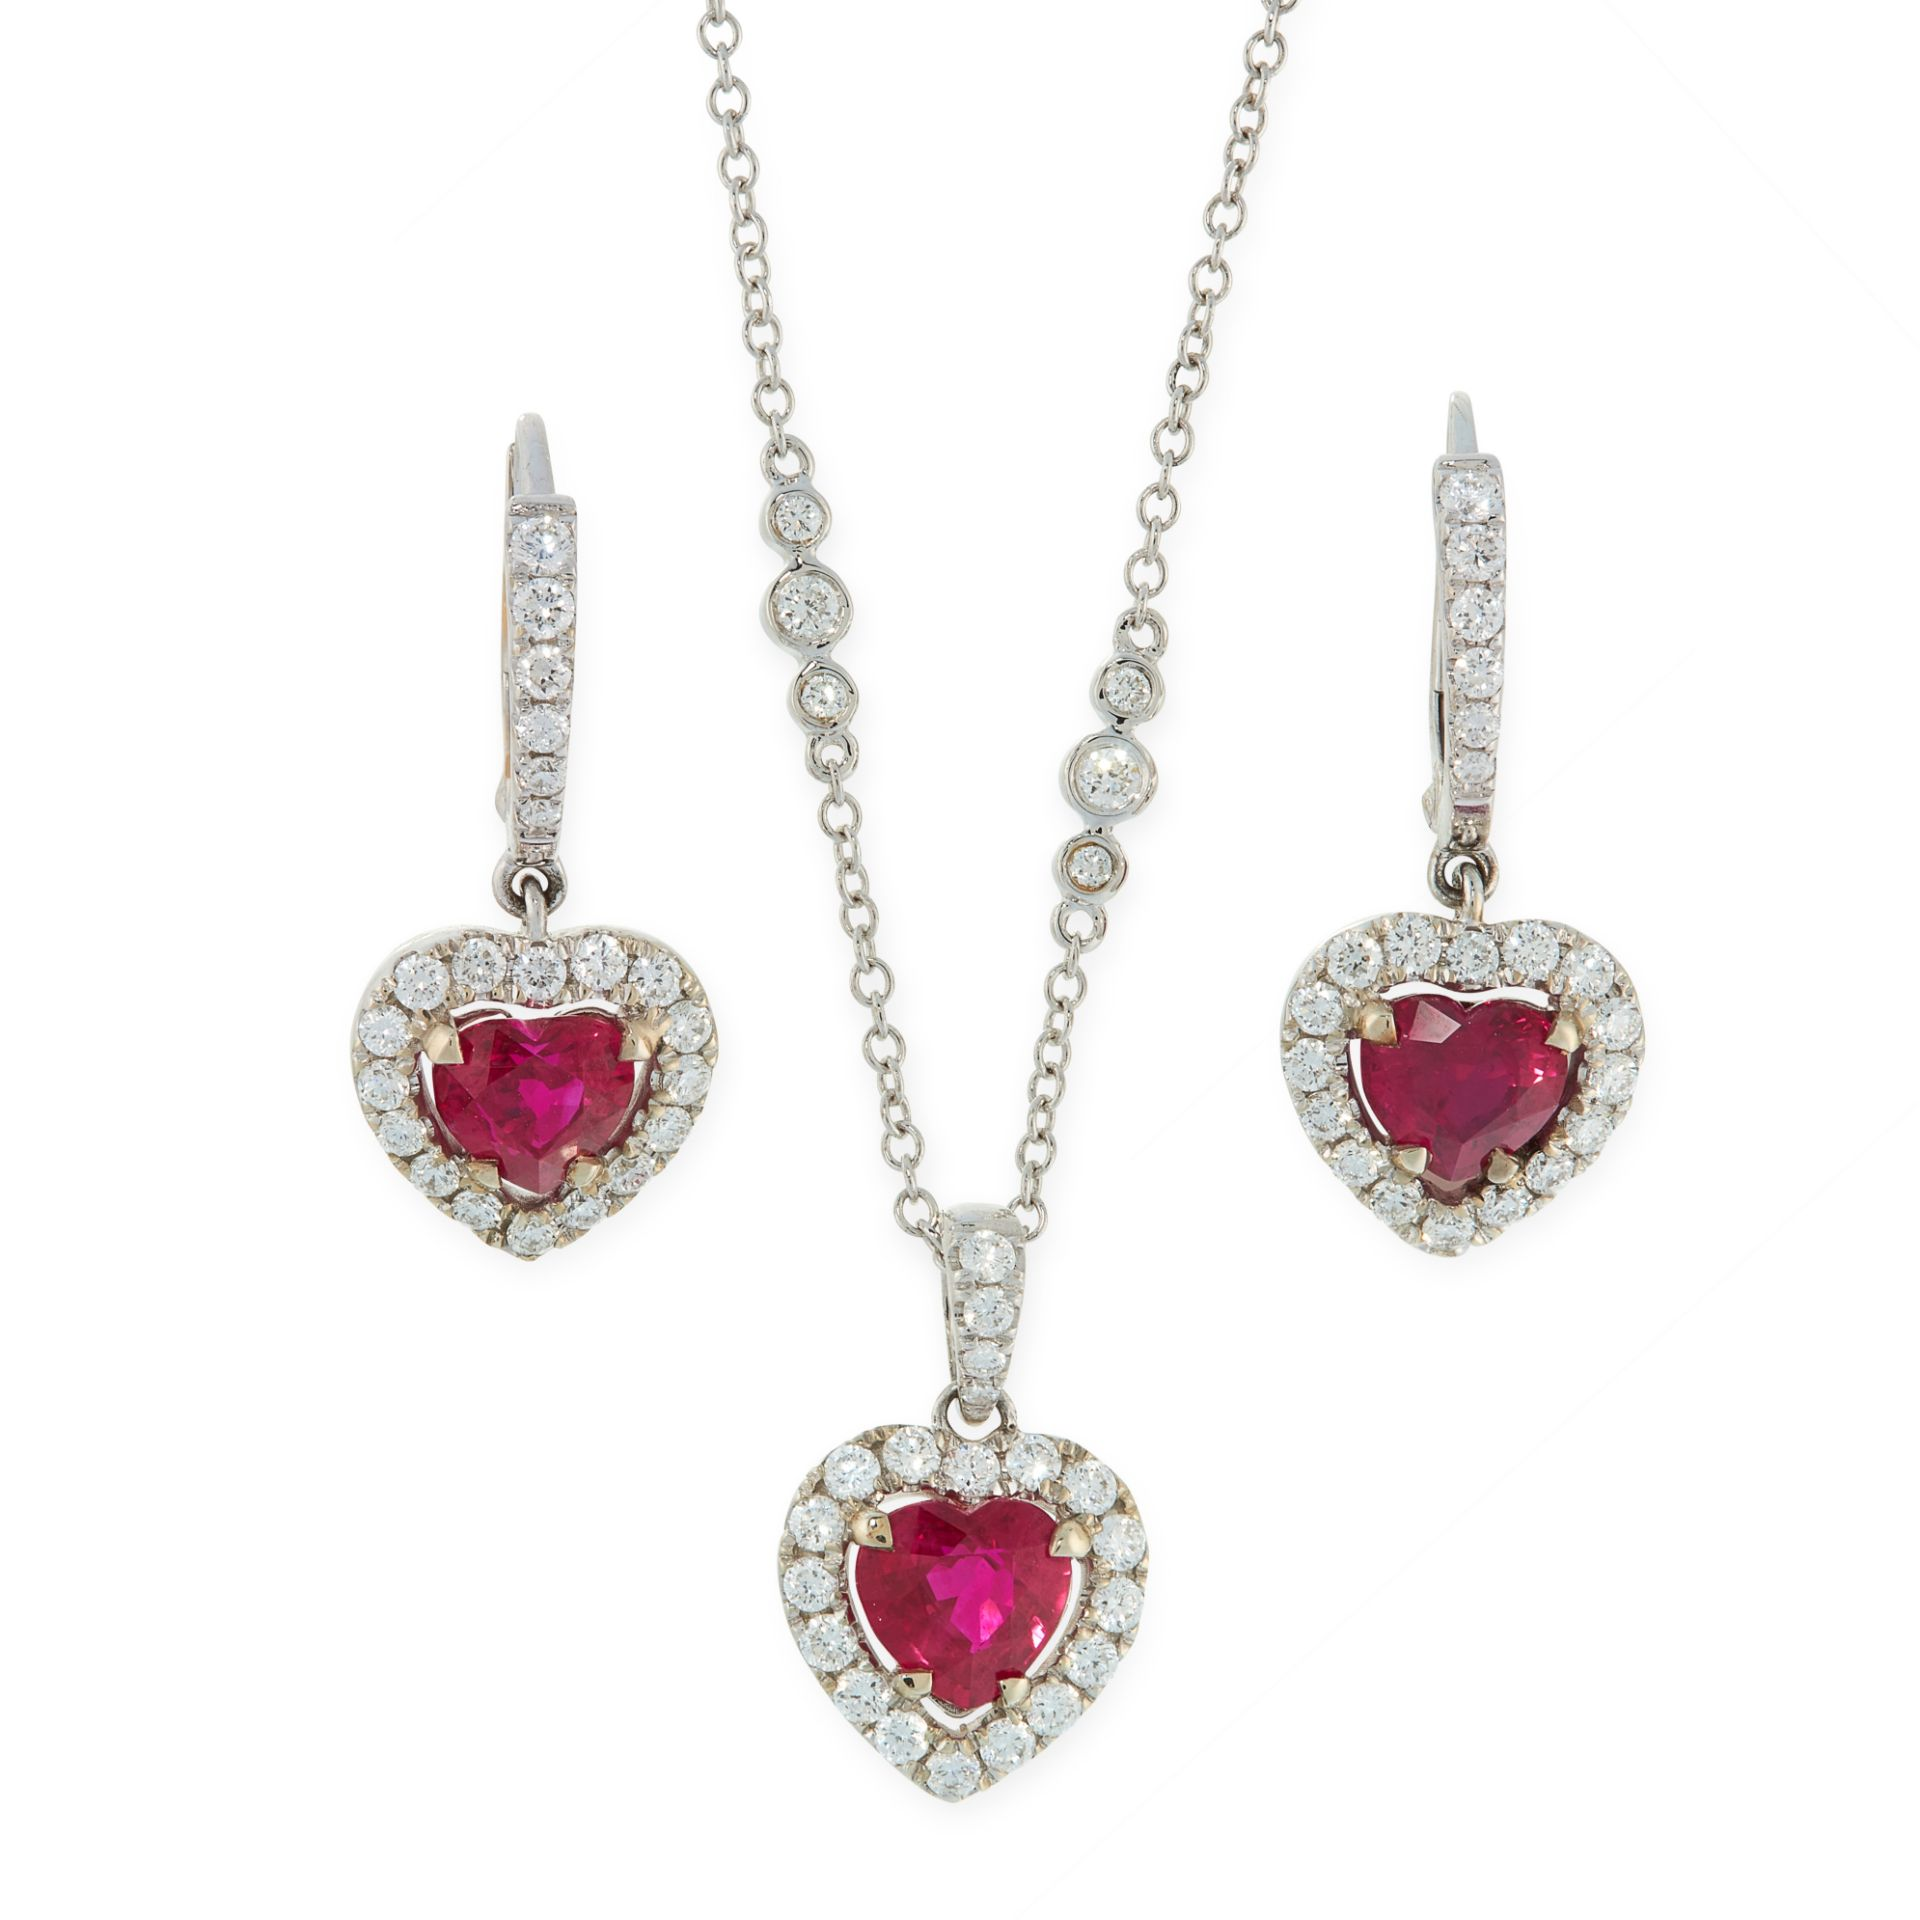 A RUBY AND DIAMOND PENDANT, CHAIN AND EARRINGS SUITE in 18ct white gold, each set with a heart